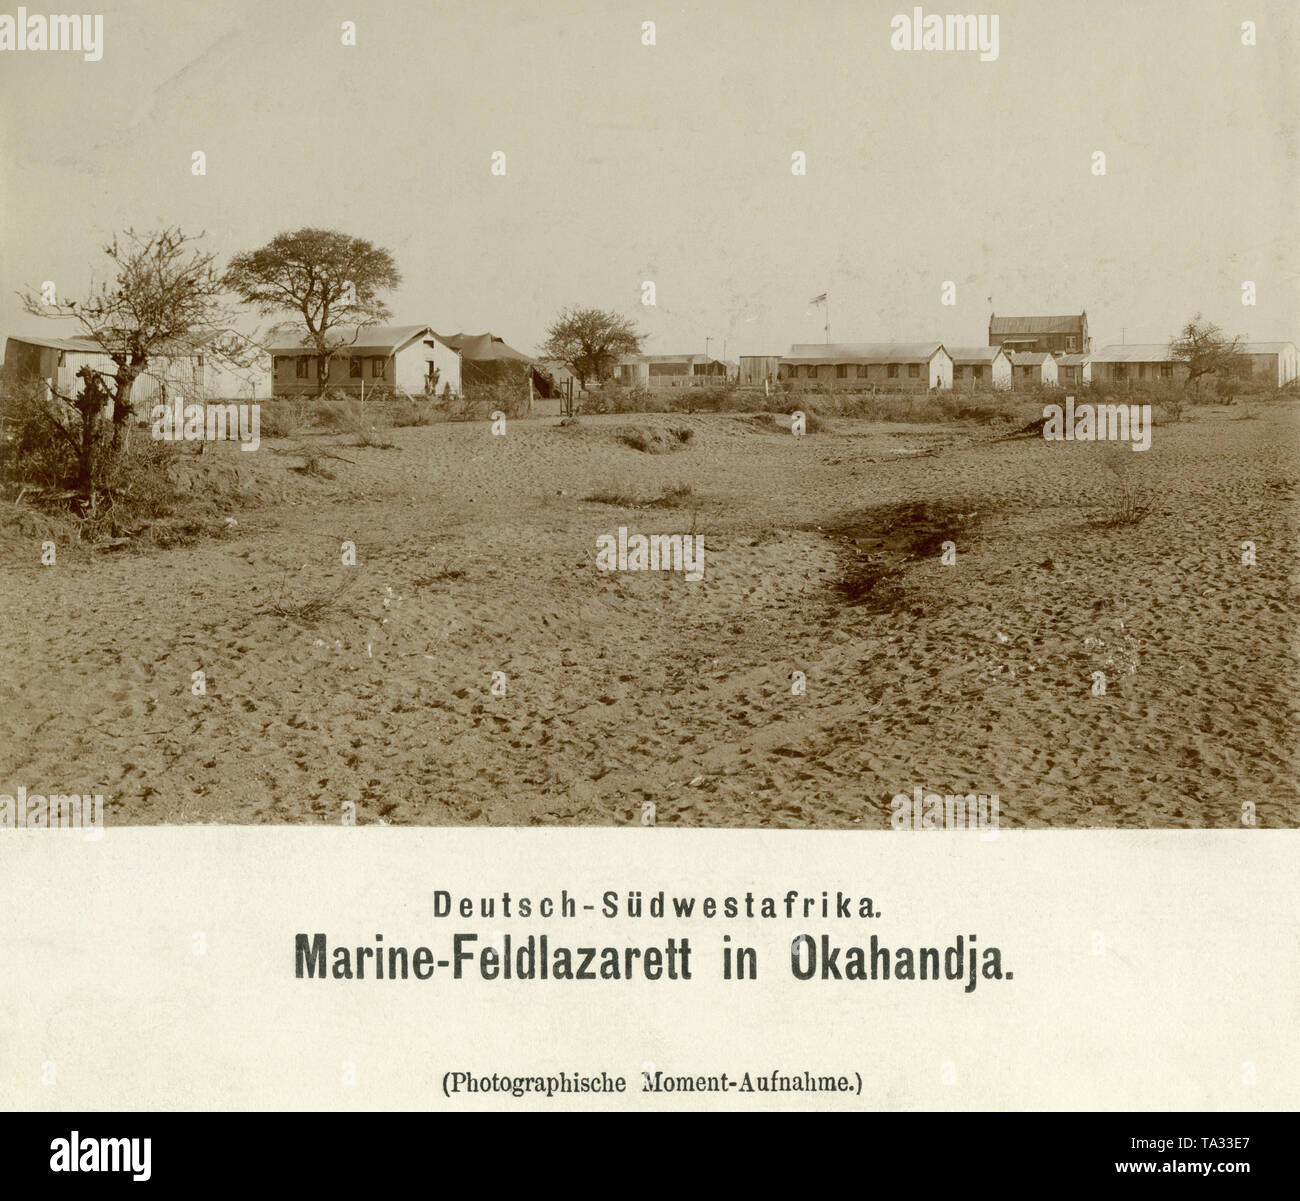 Habitations of the Marine Field Hospital in Okahandja, German South West Africa (undated photo). - Stock Image